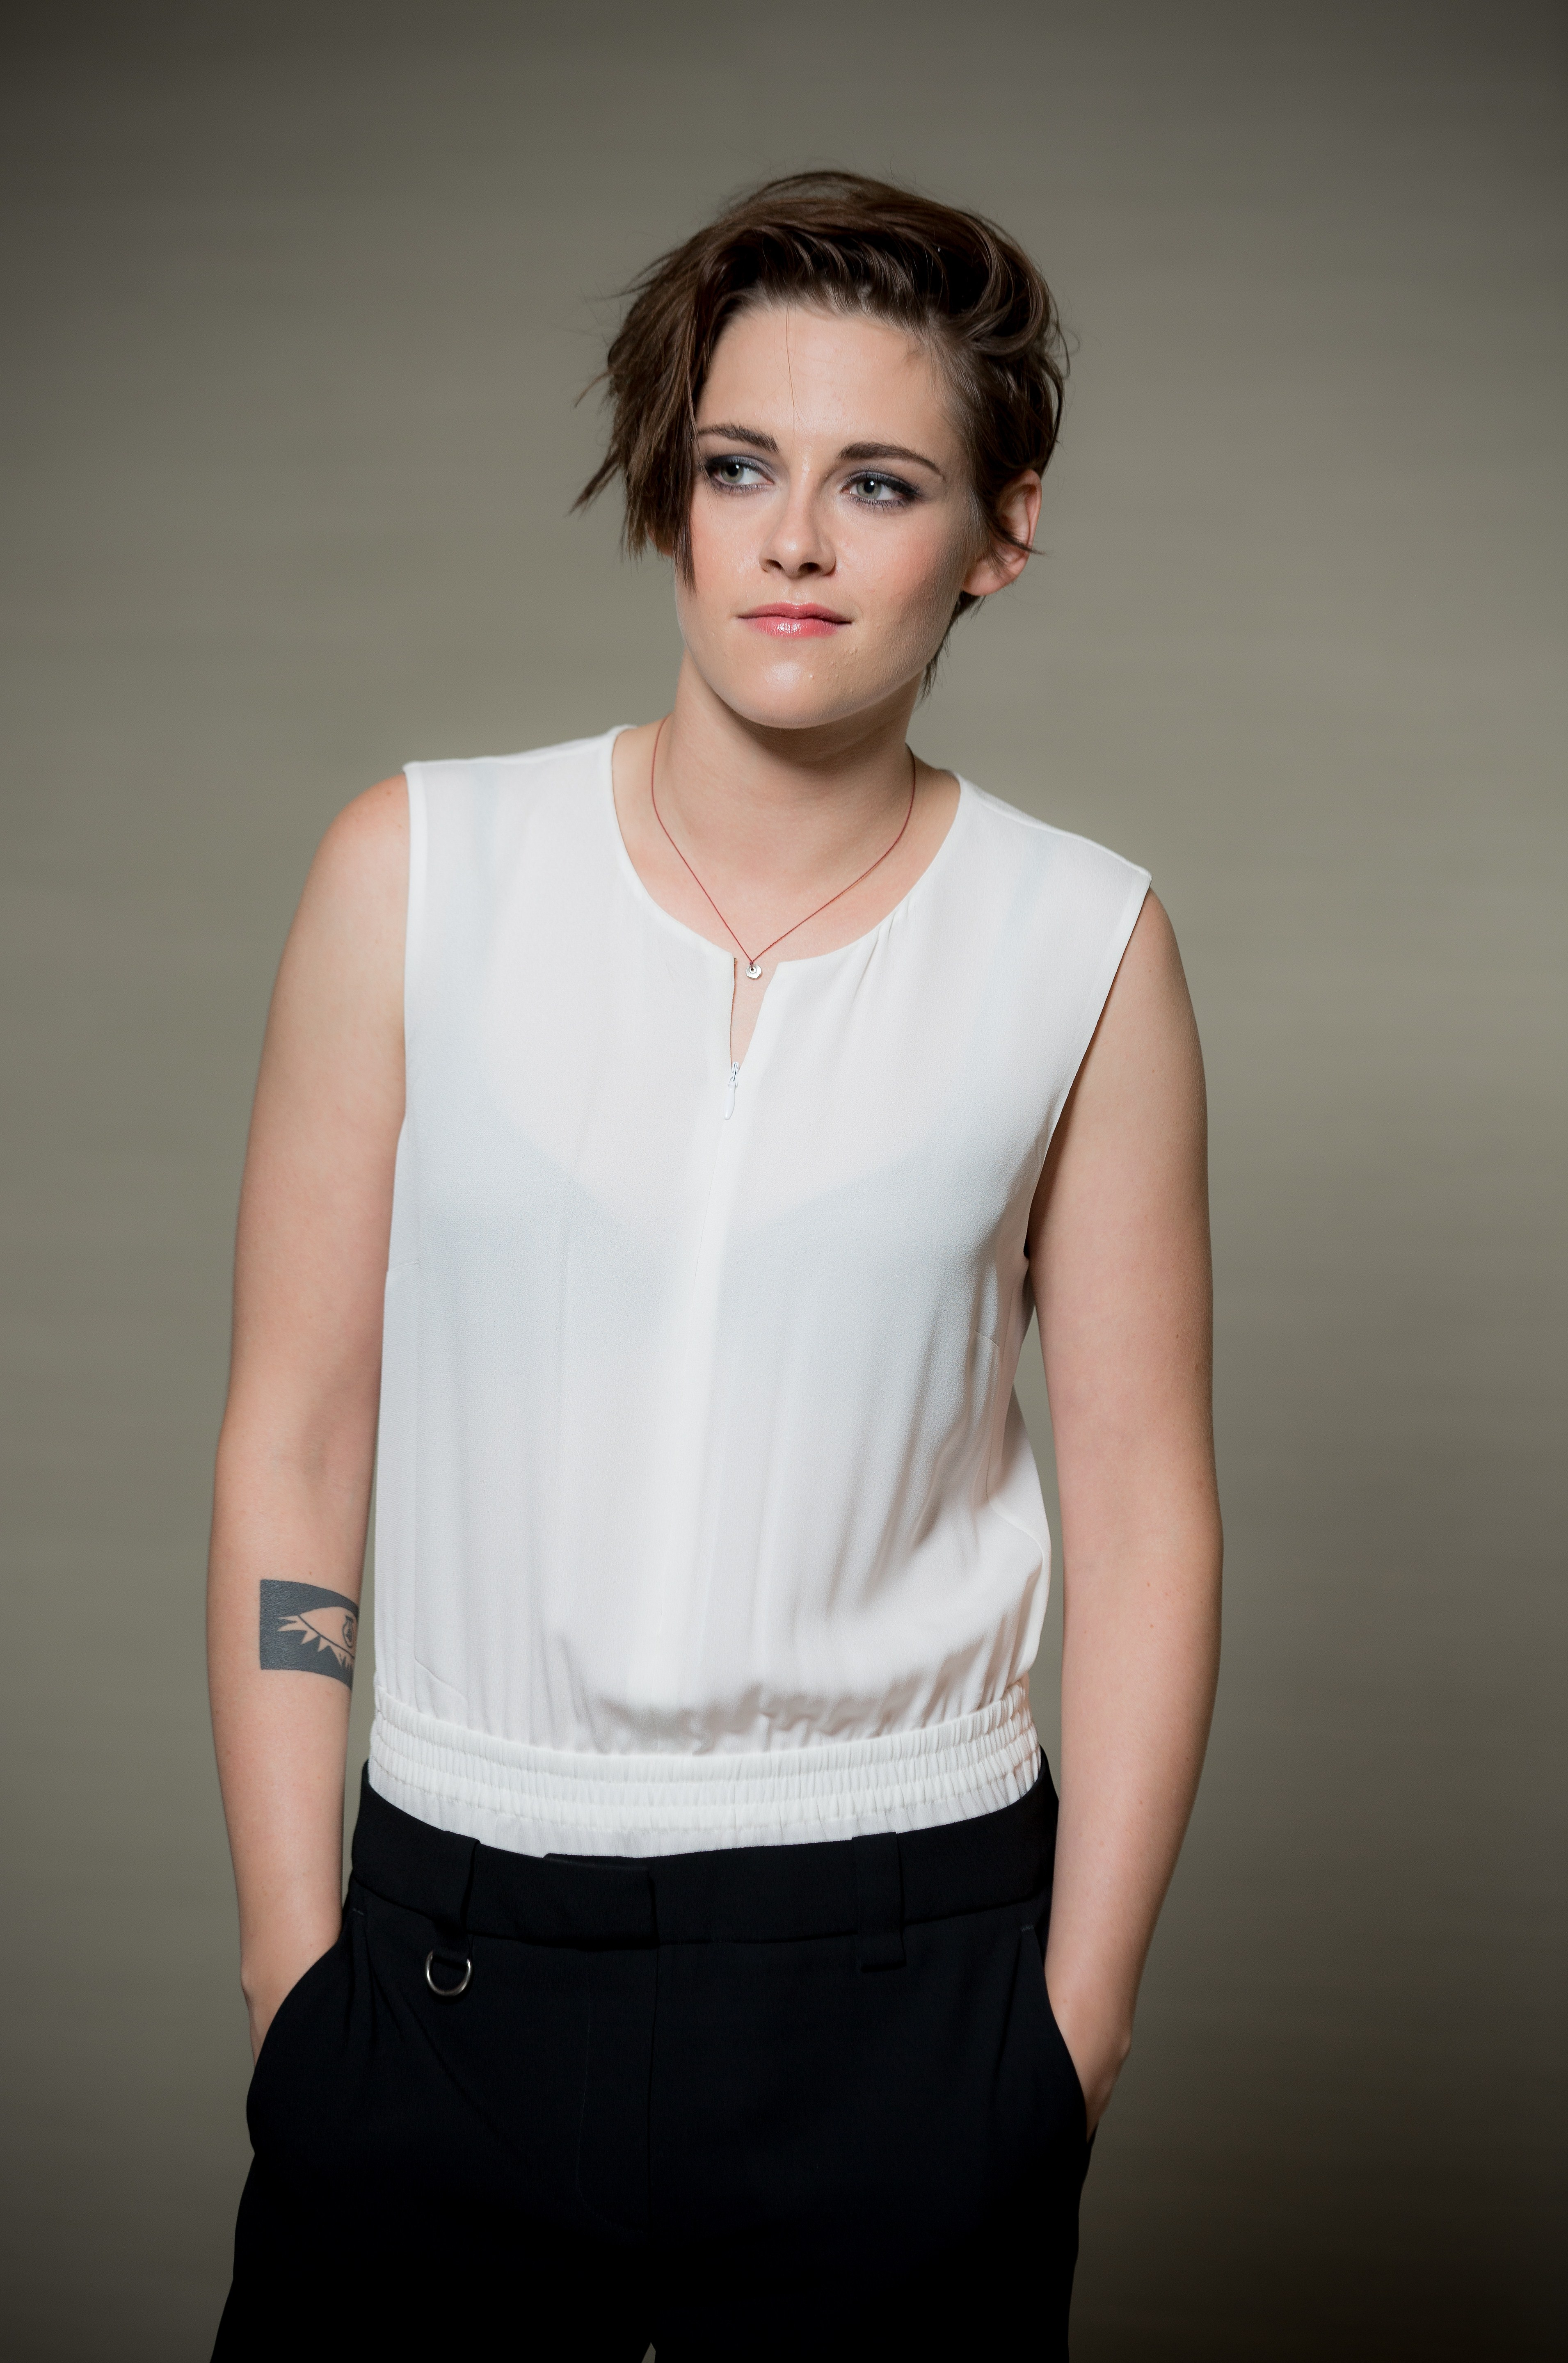 Kristen Stewart In Elle Magazine France November 2012: Kristen Stewart Pictures Gallery (46)